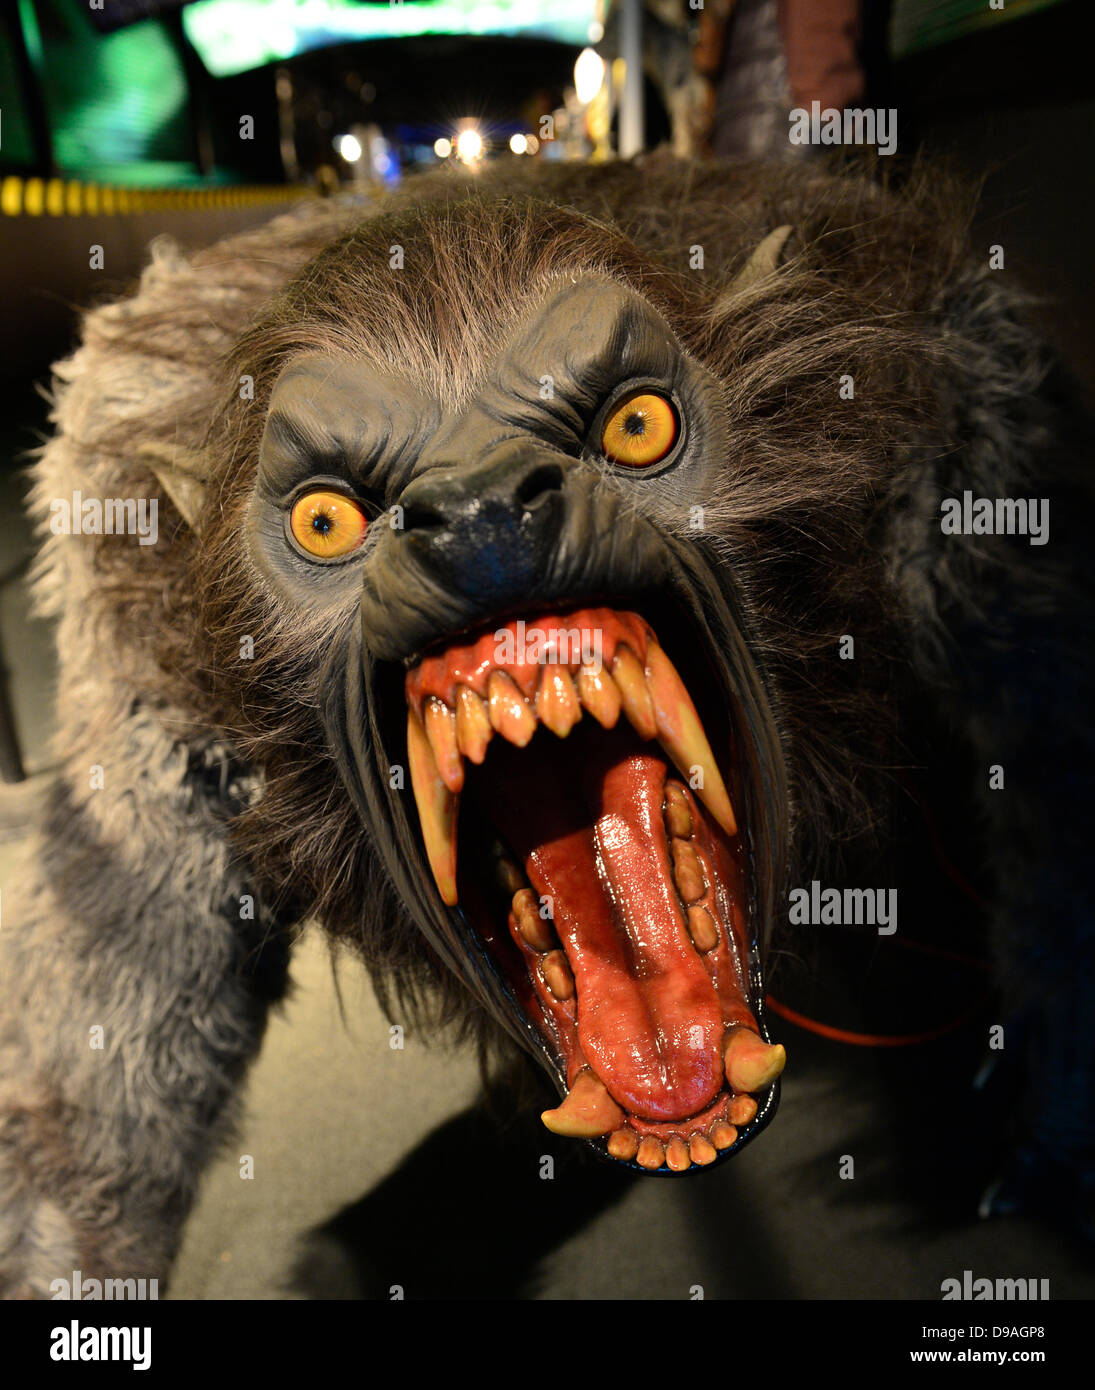 Garden City, New York. 15th June 2013. A snarling monster with large ...